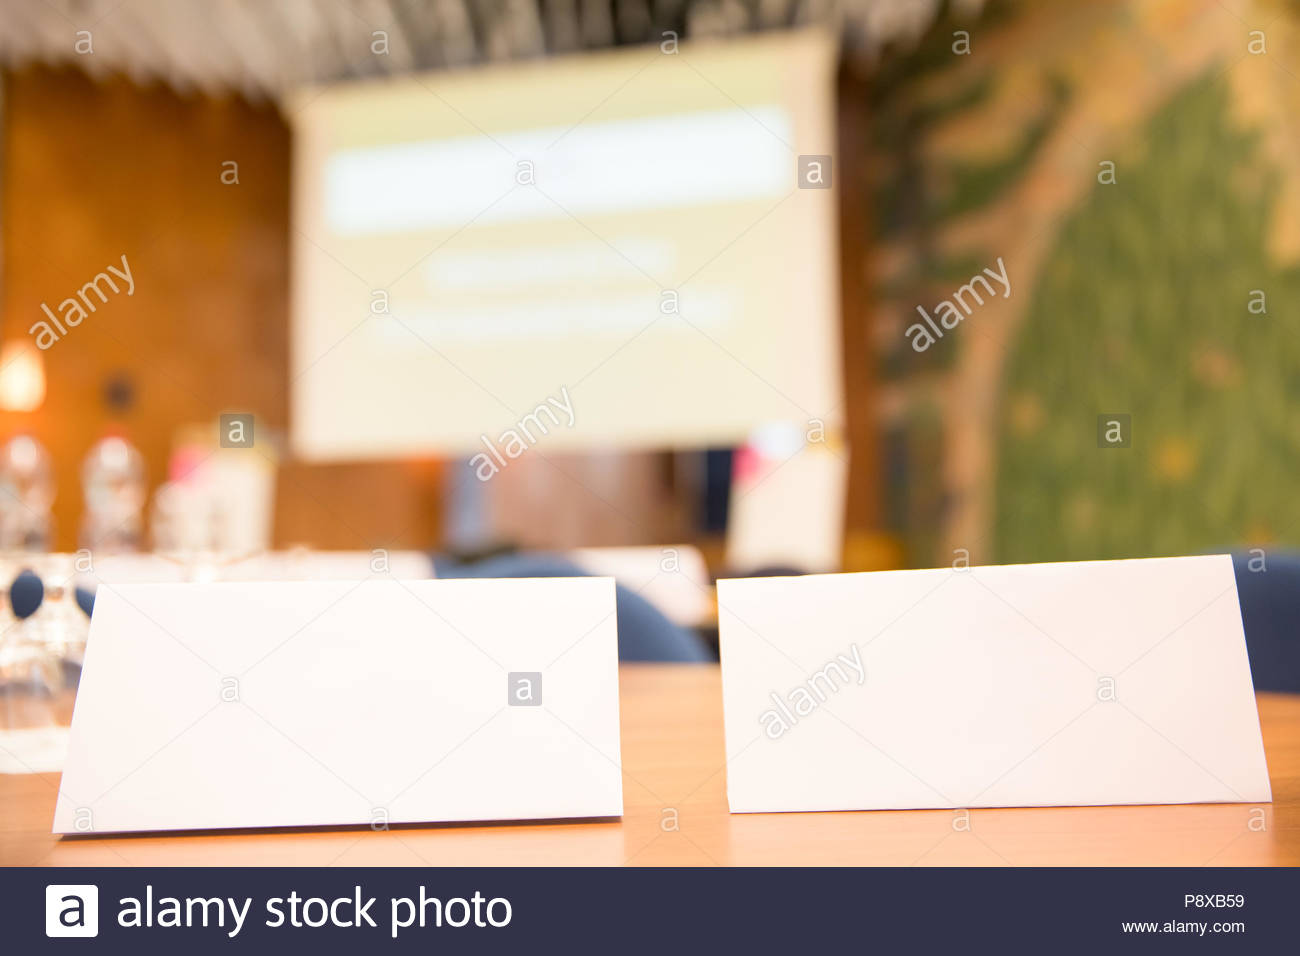 white name tag on office desk at public meeting stock photo